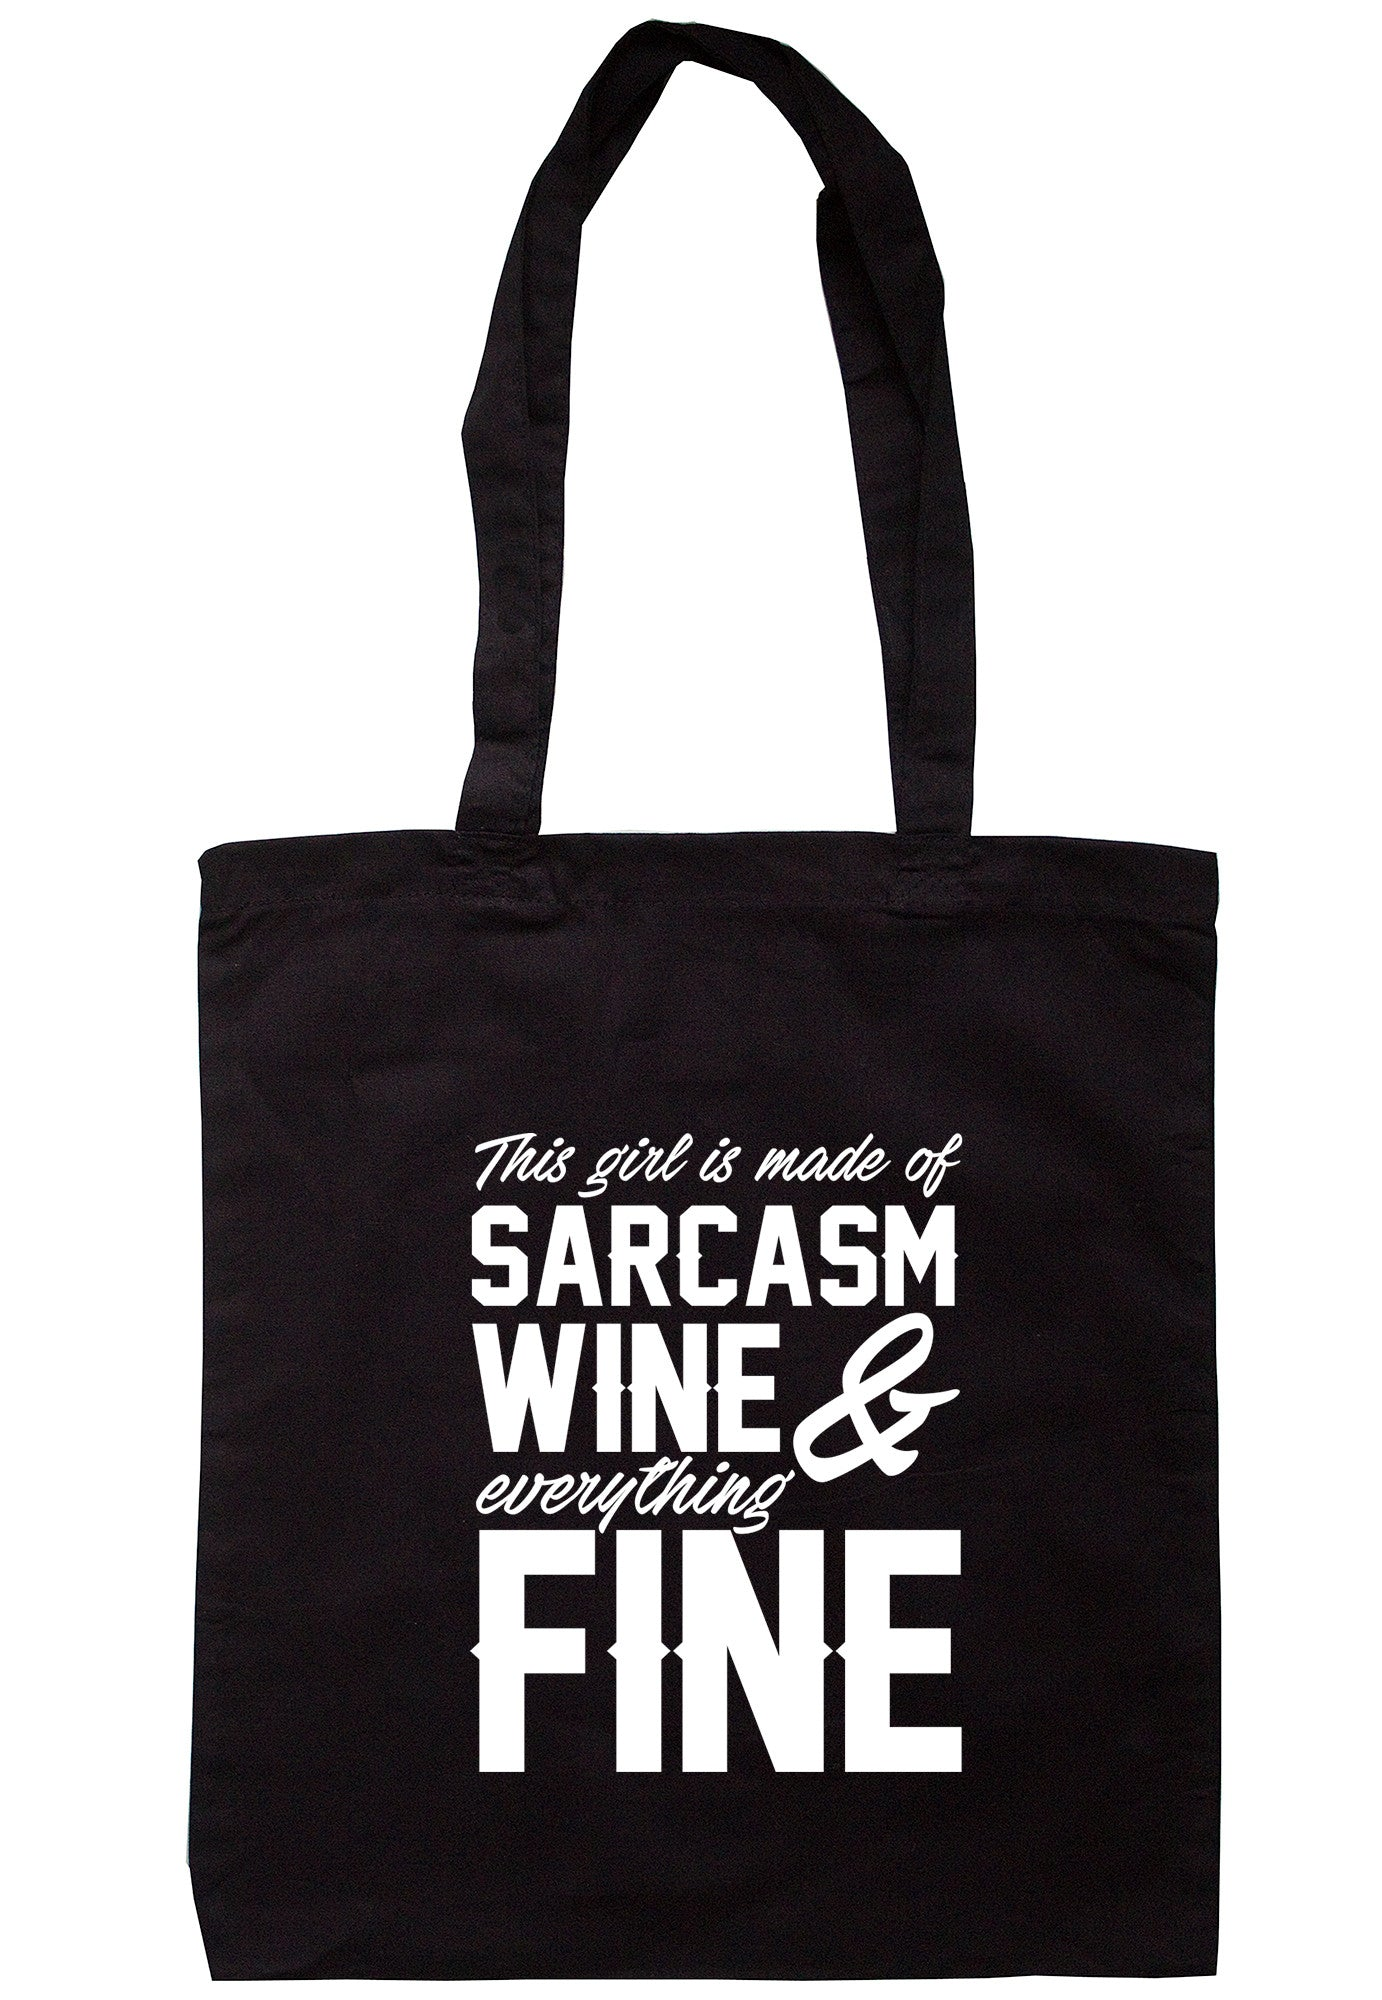 This Girl Is Made Of Sarcasm Wine & Everything Fine Tote Bag TB0460 - Illustrated Identity Ltd.